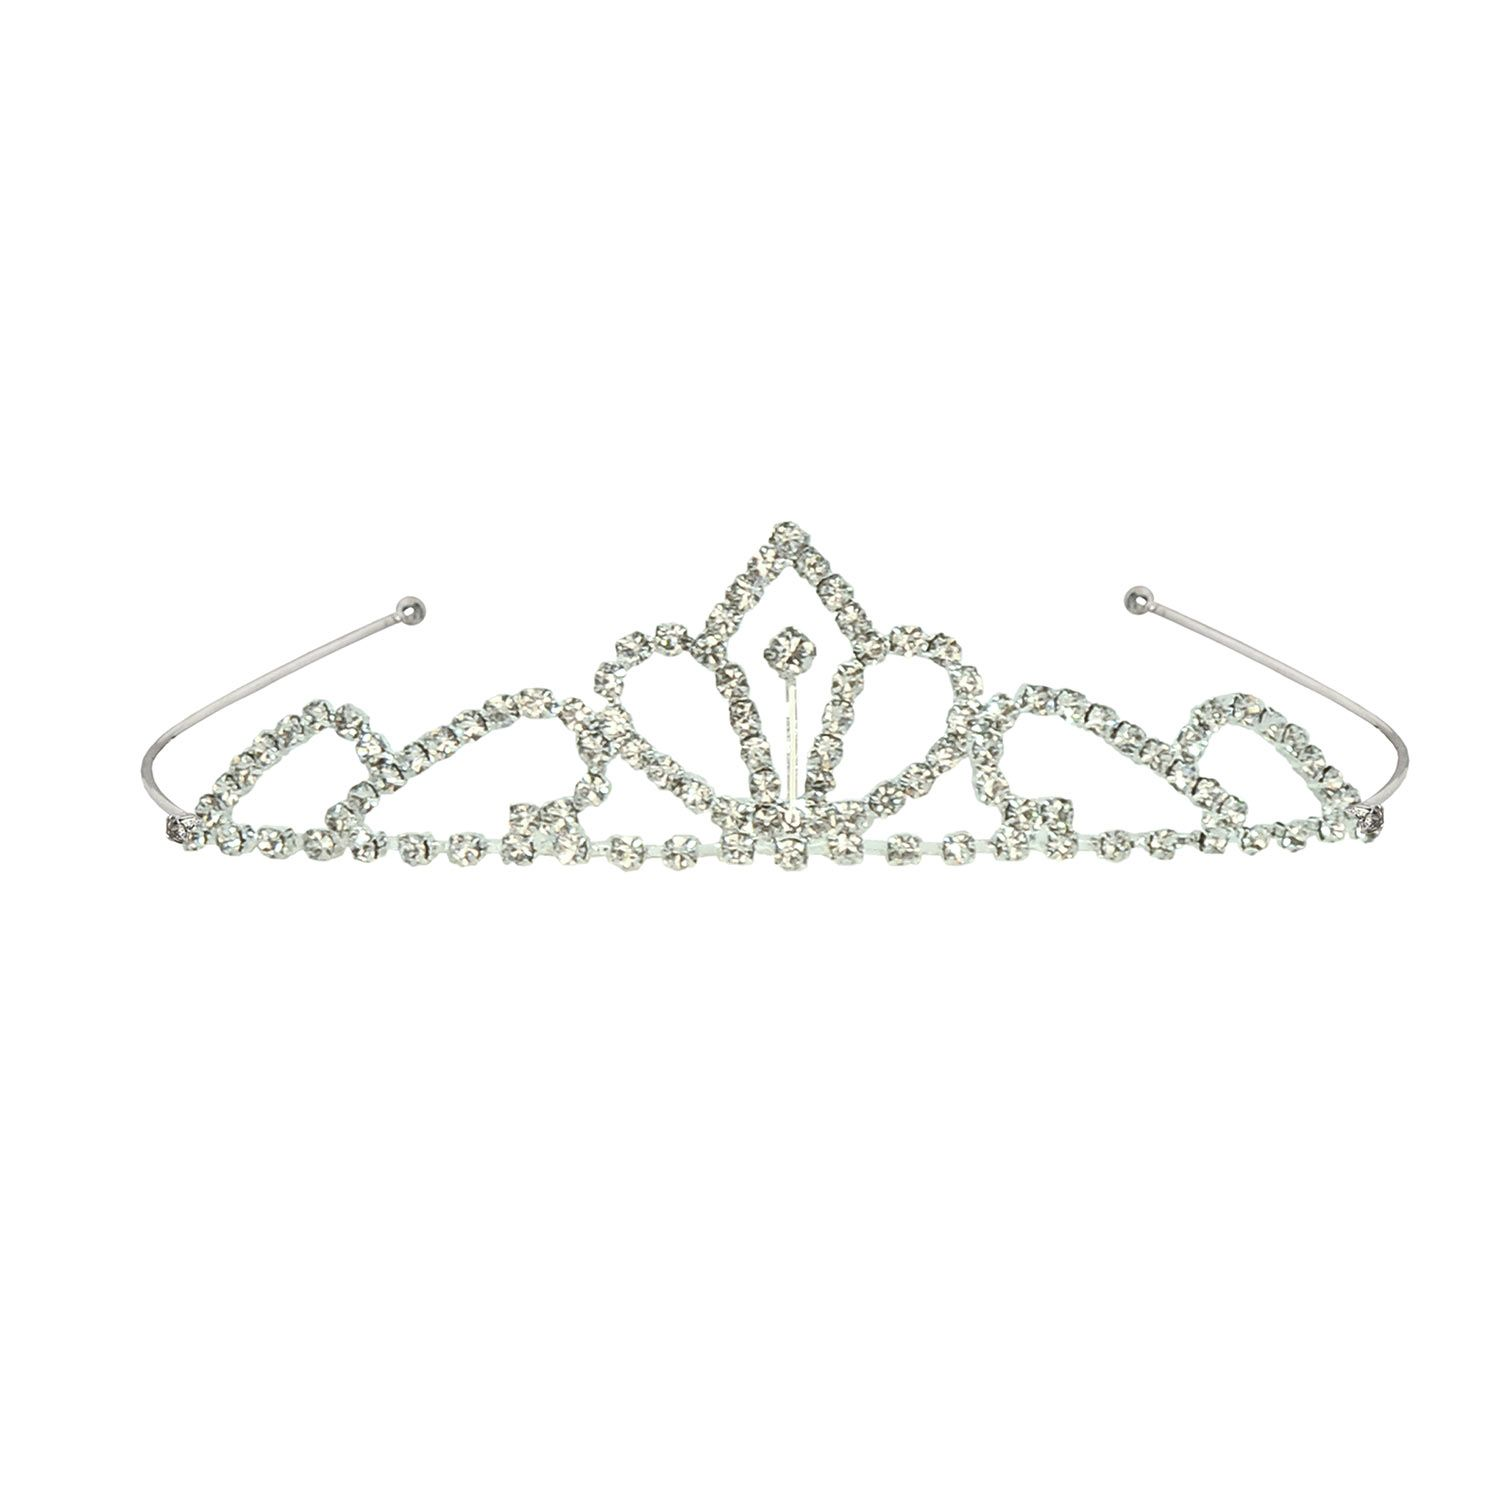 24-Pack Fun Festive Headband Holiday Party Supplies 3 Assorted Metallic Colors Gold New Year Party Tiaras and Black Happy New Year Glitter Design Silver One Size Fits All